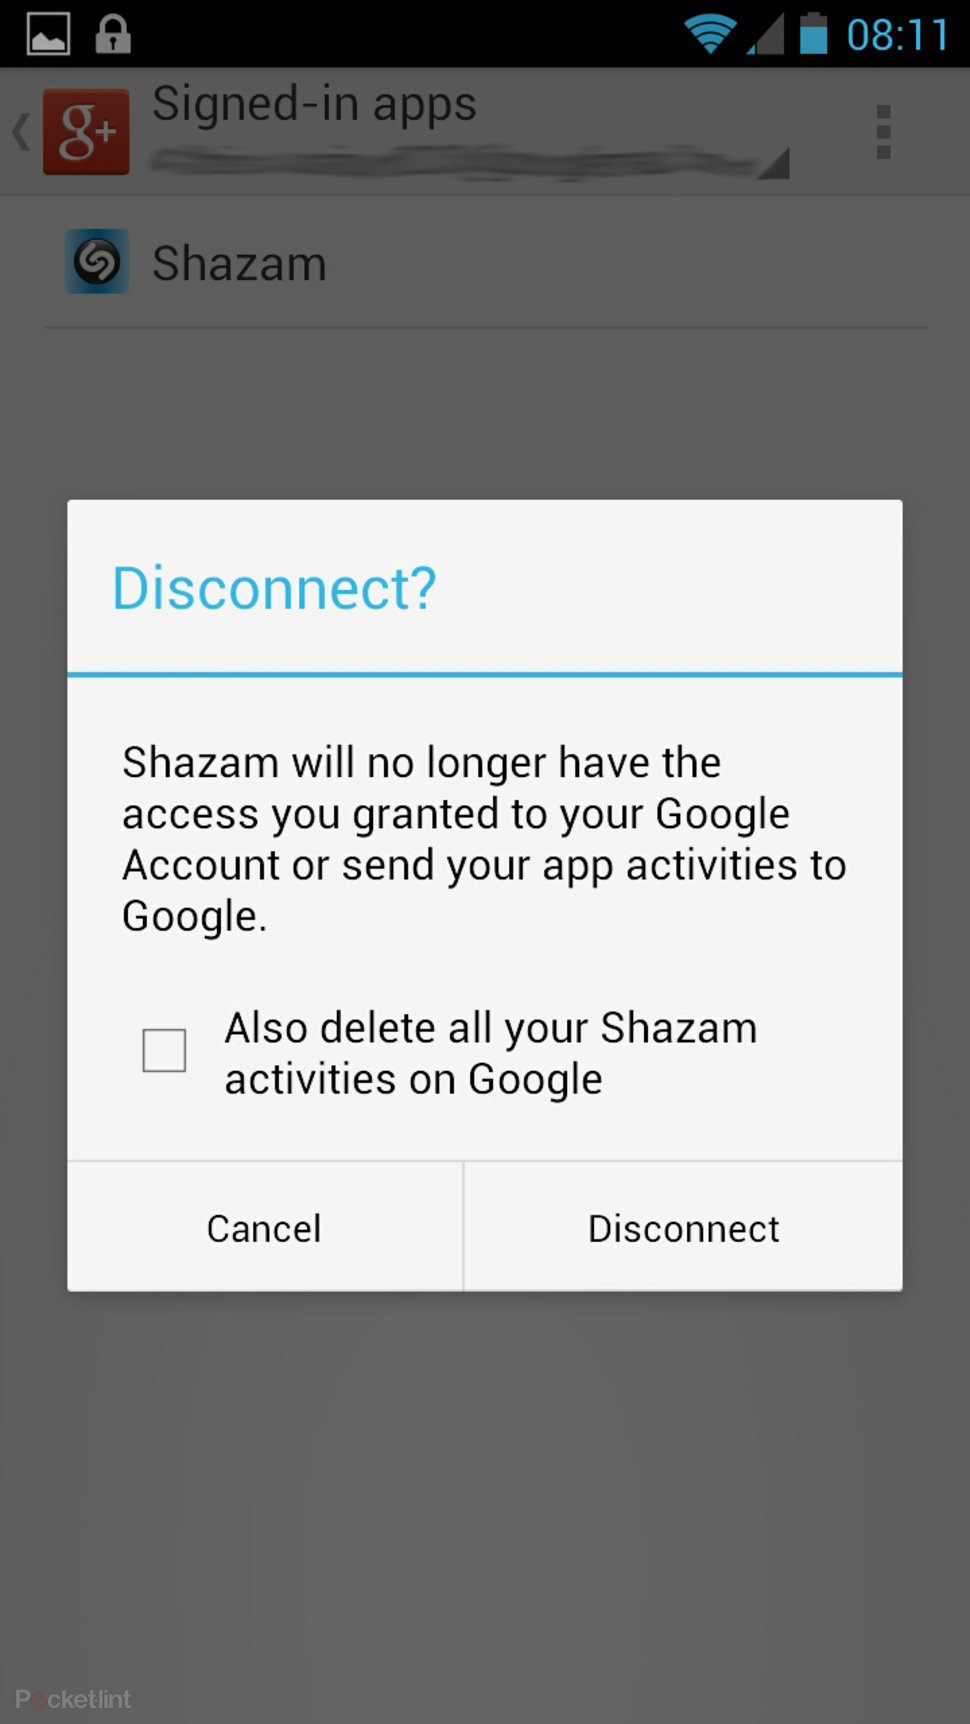 Google Settings app appears in Android, lets you control Google